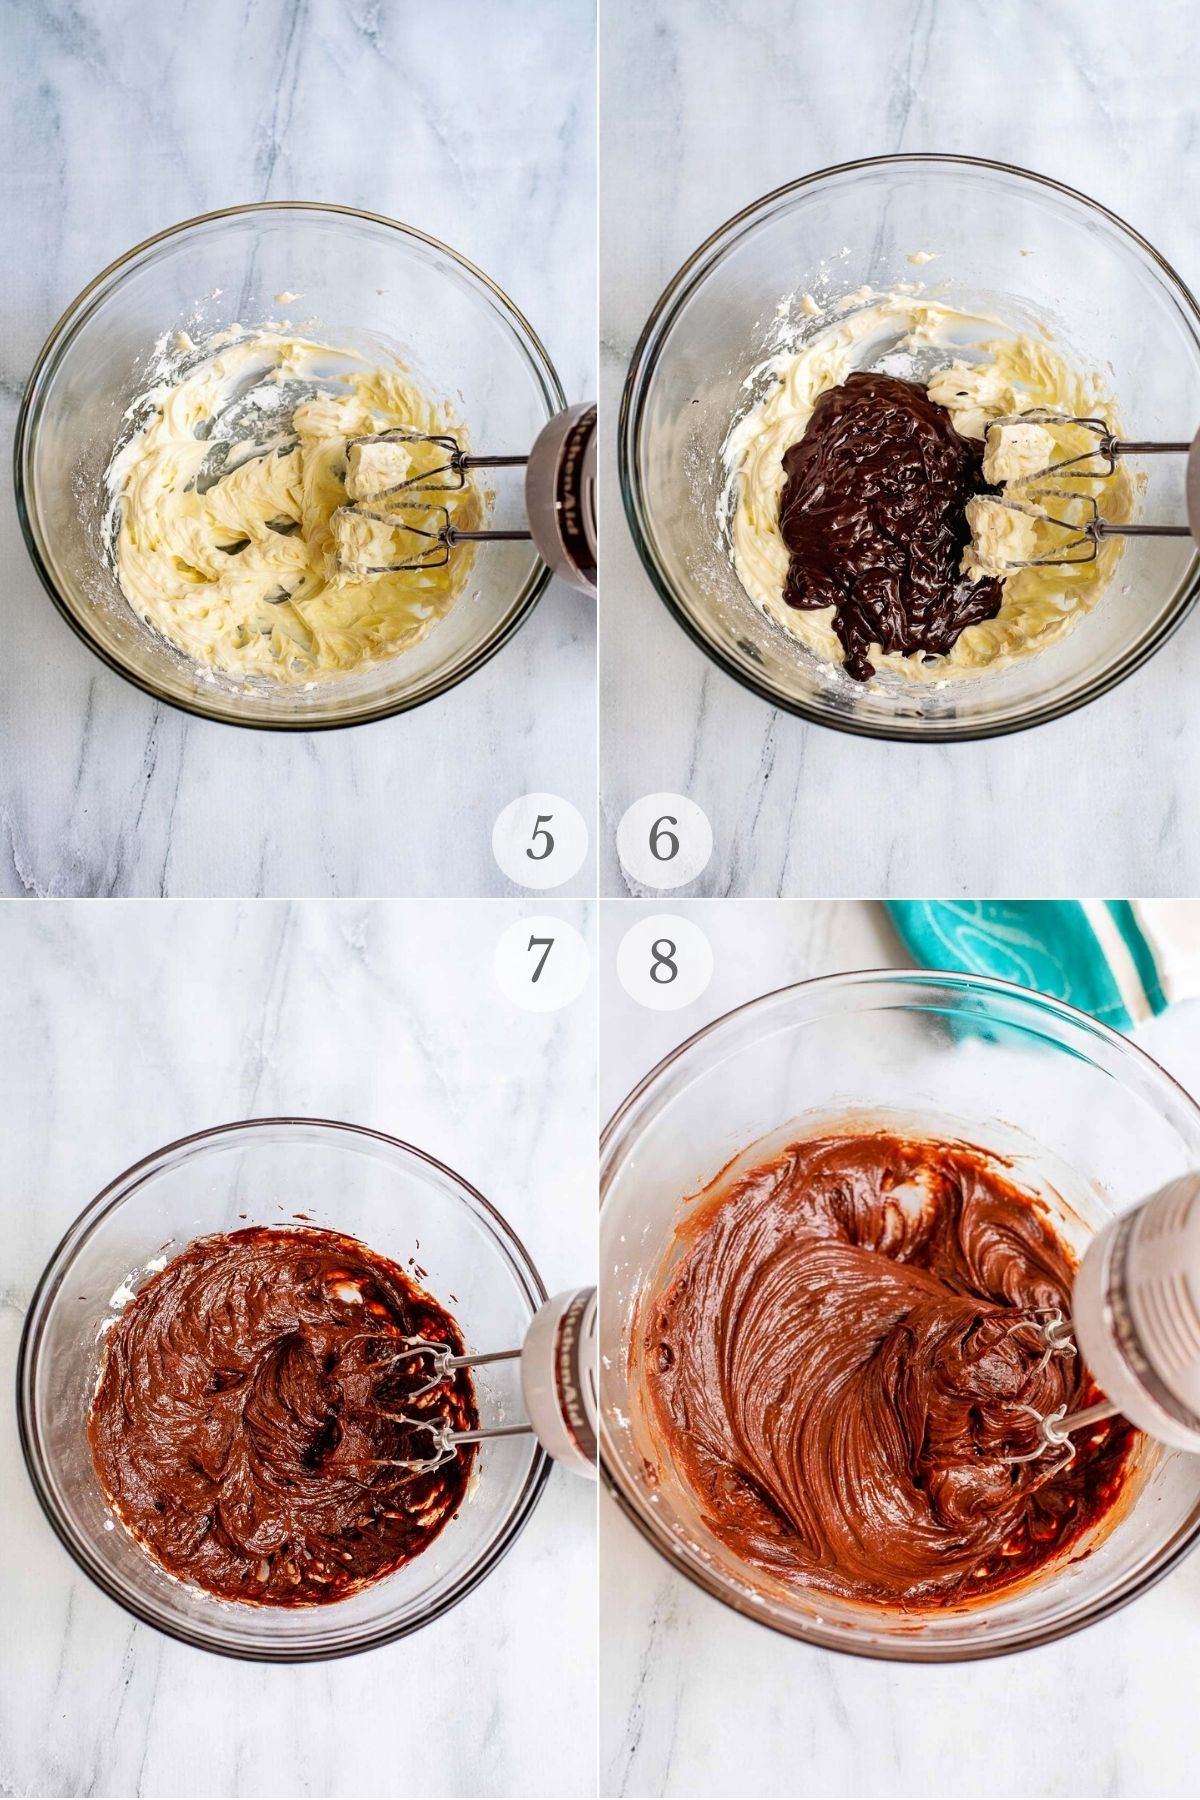 chocolate cream cheese frosting recipe steps 5-8